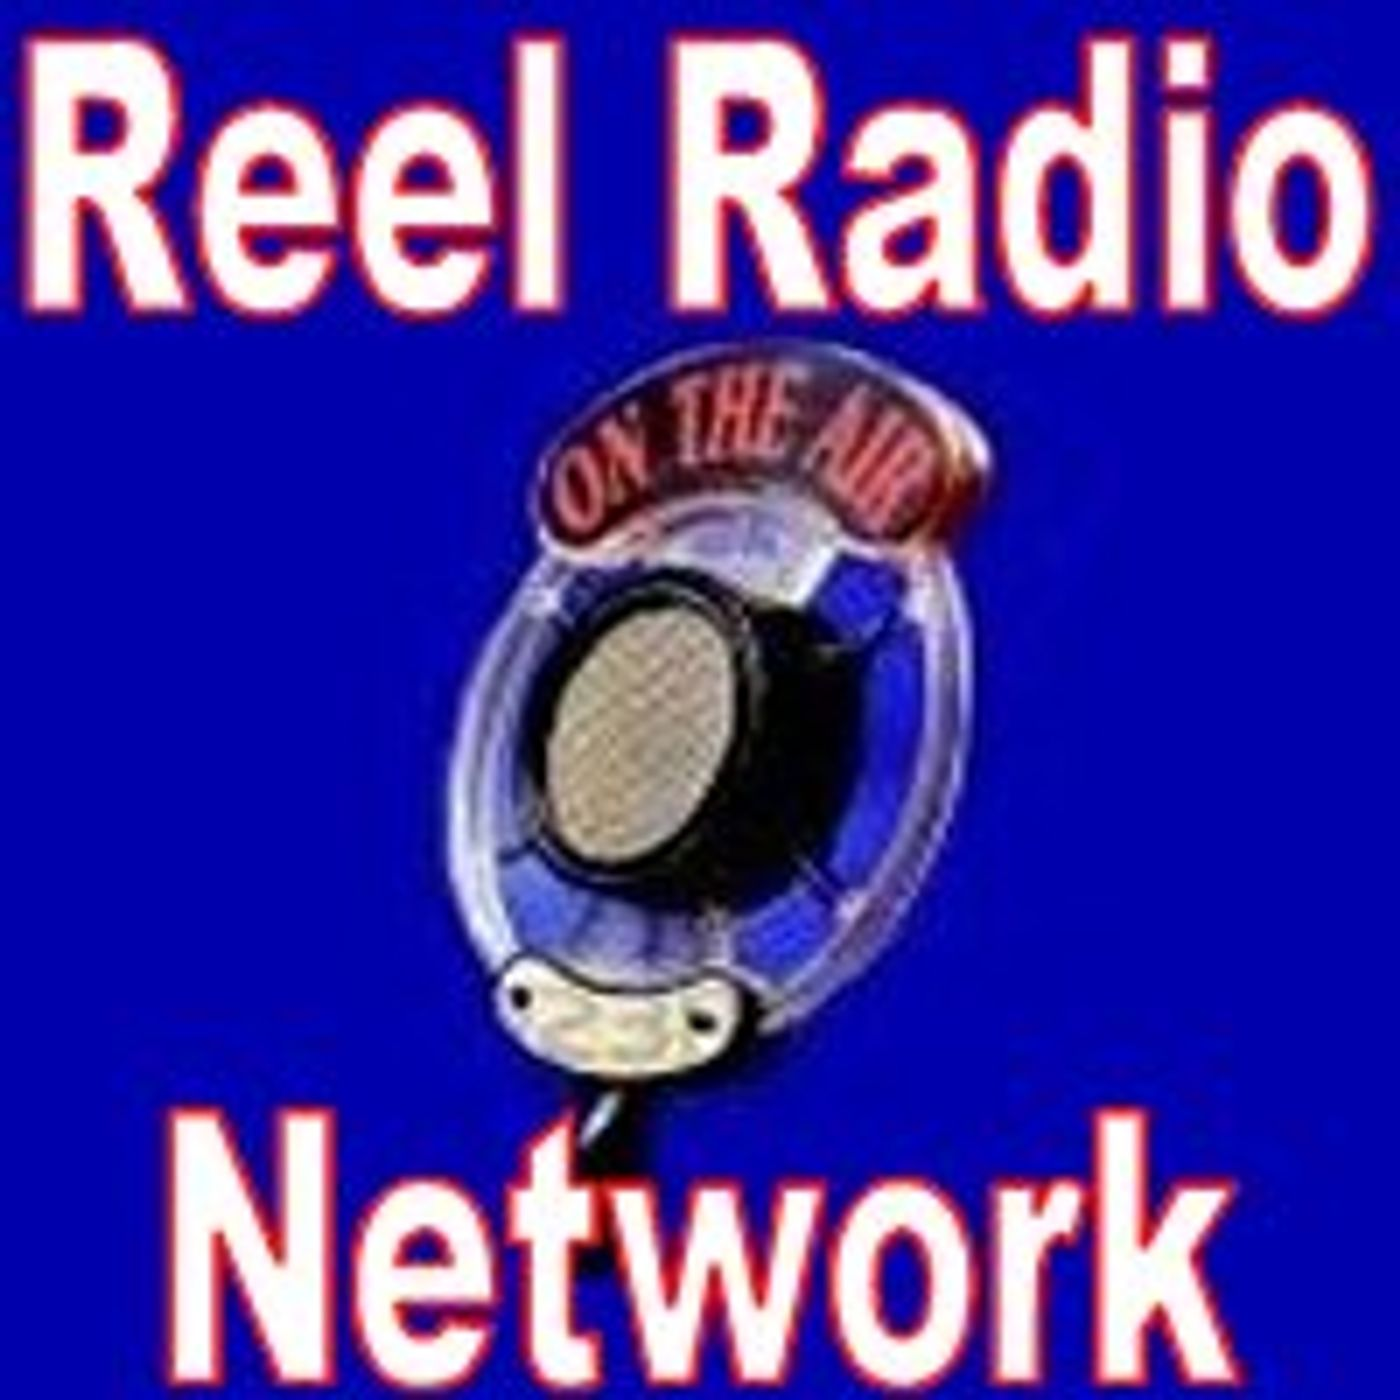 The REEL Radio Network